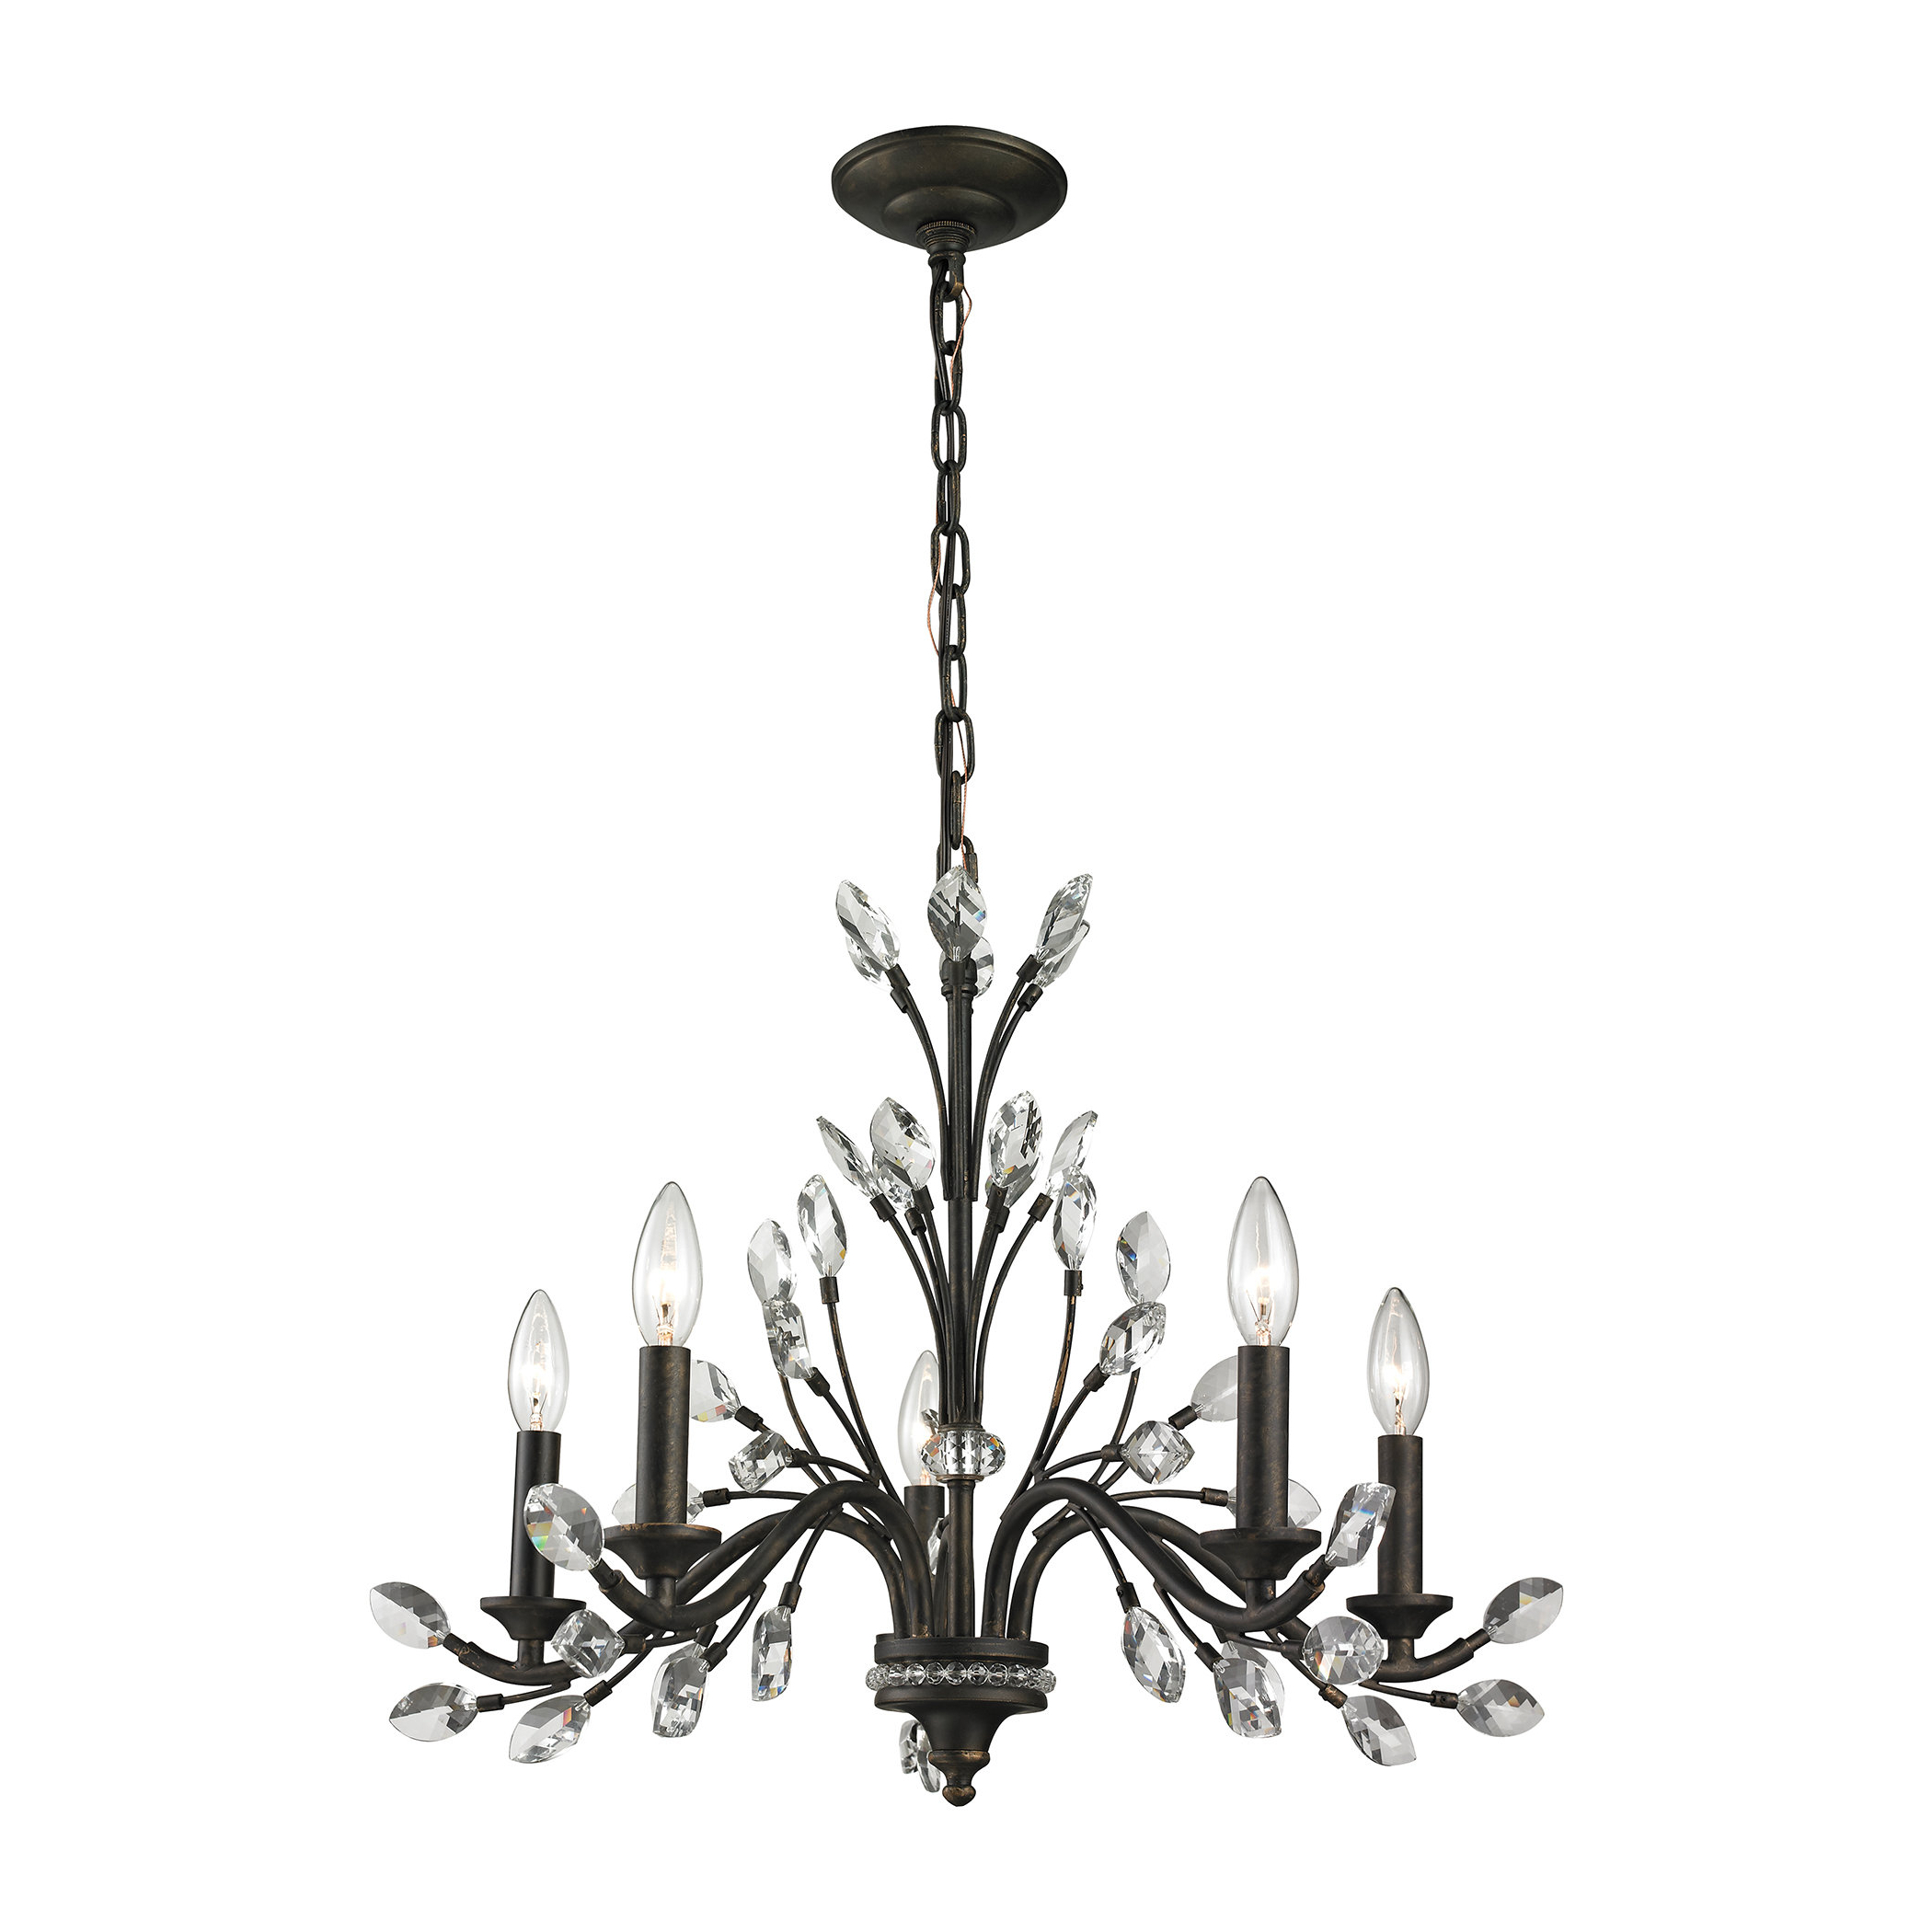 Famous Berger 5 Light Candle Style Chandeliers In Hammel 5 Light Candle Style Chandelier (View 7 of 20)